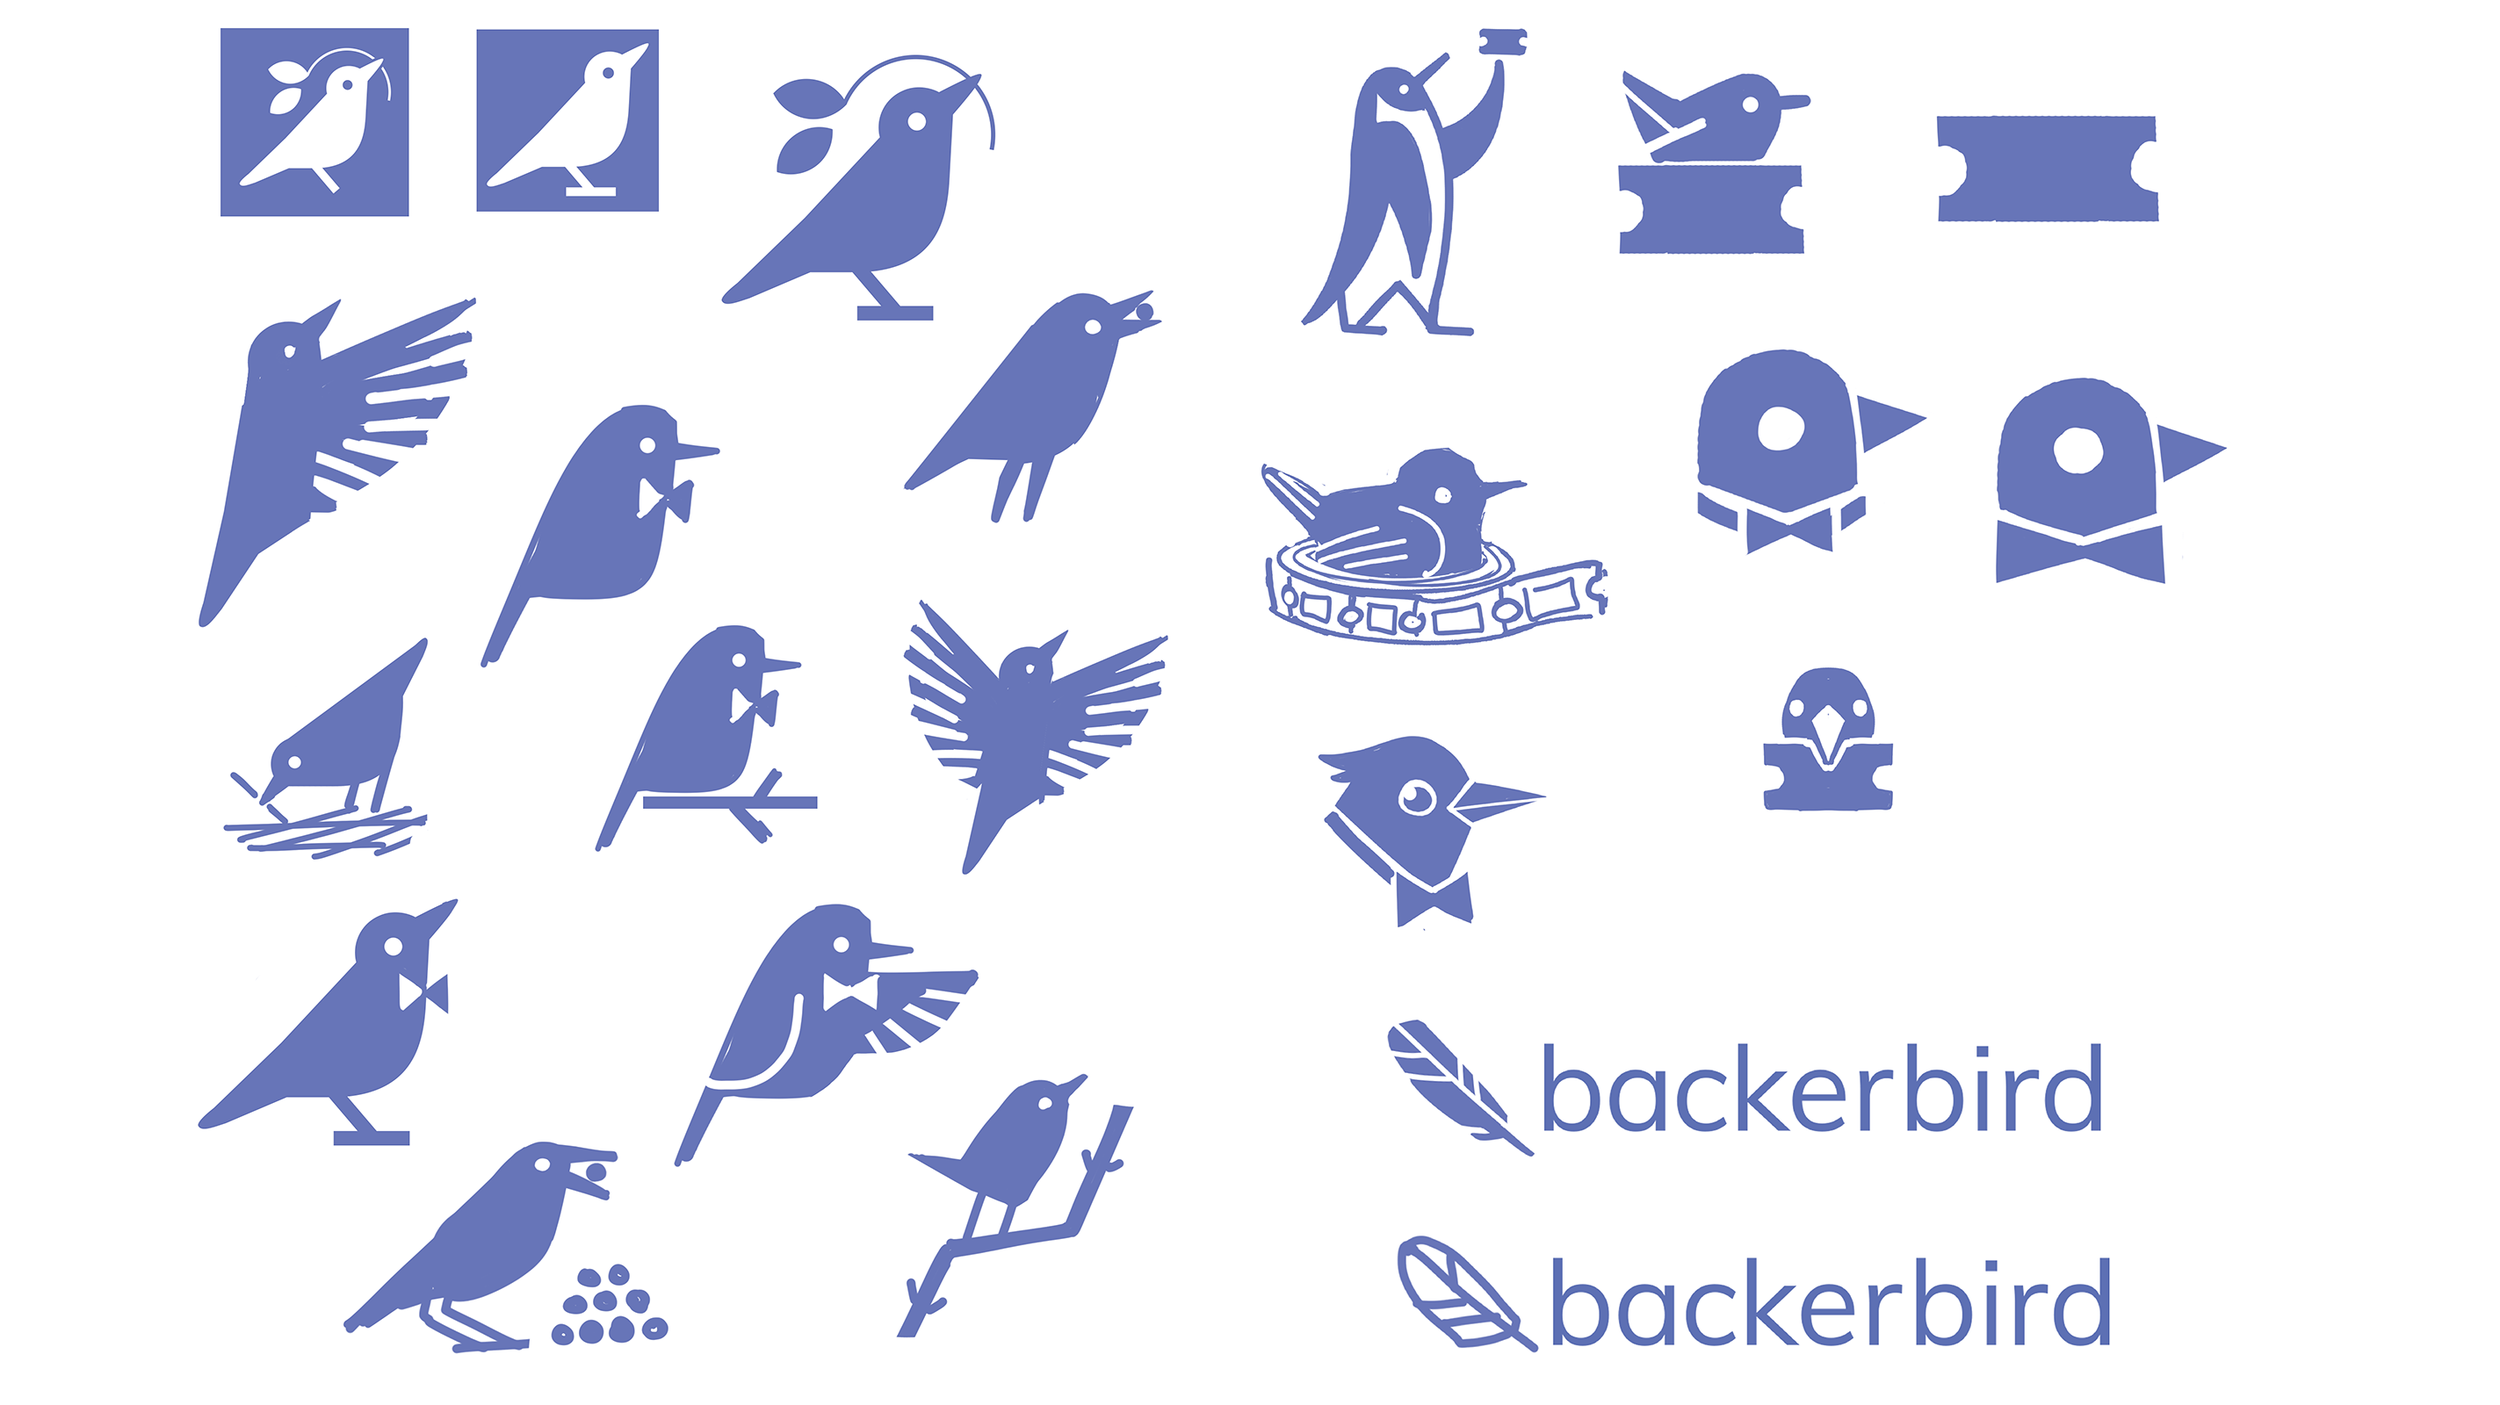 backerbird logo concepts. We decided on a cleaned up version of the lower right.